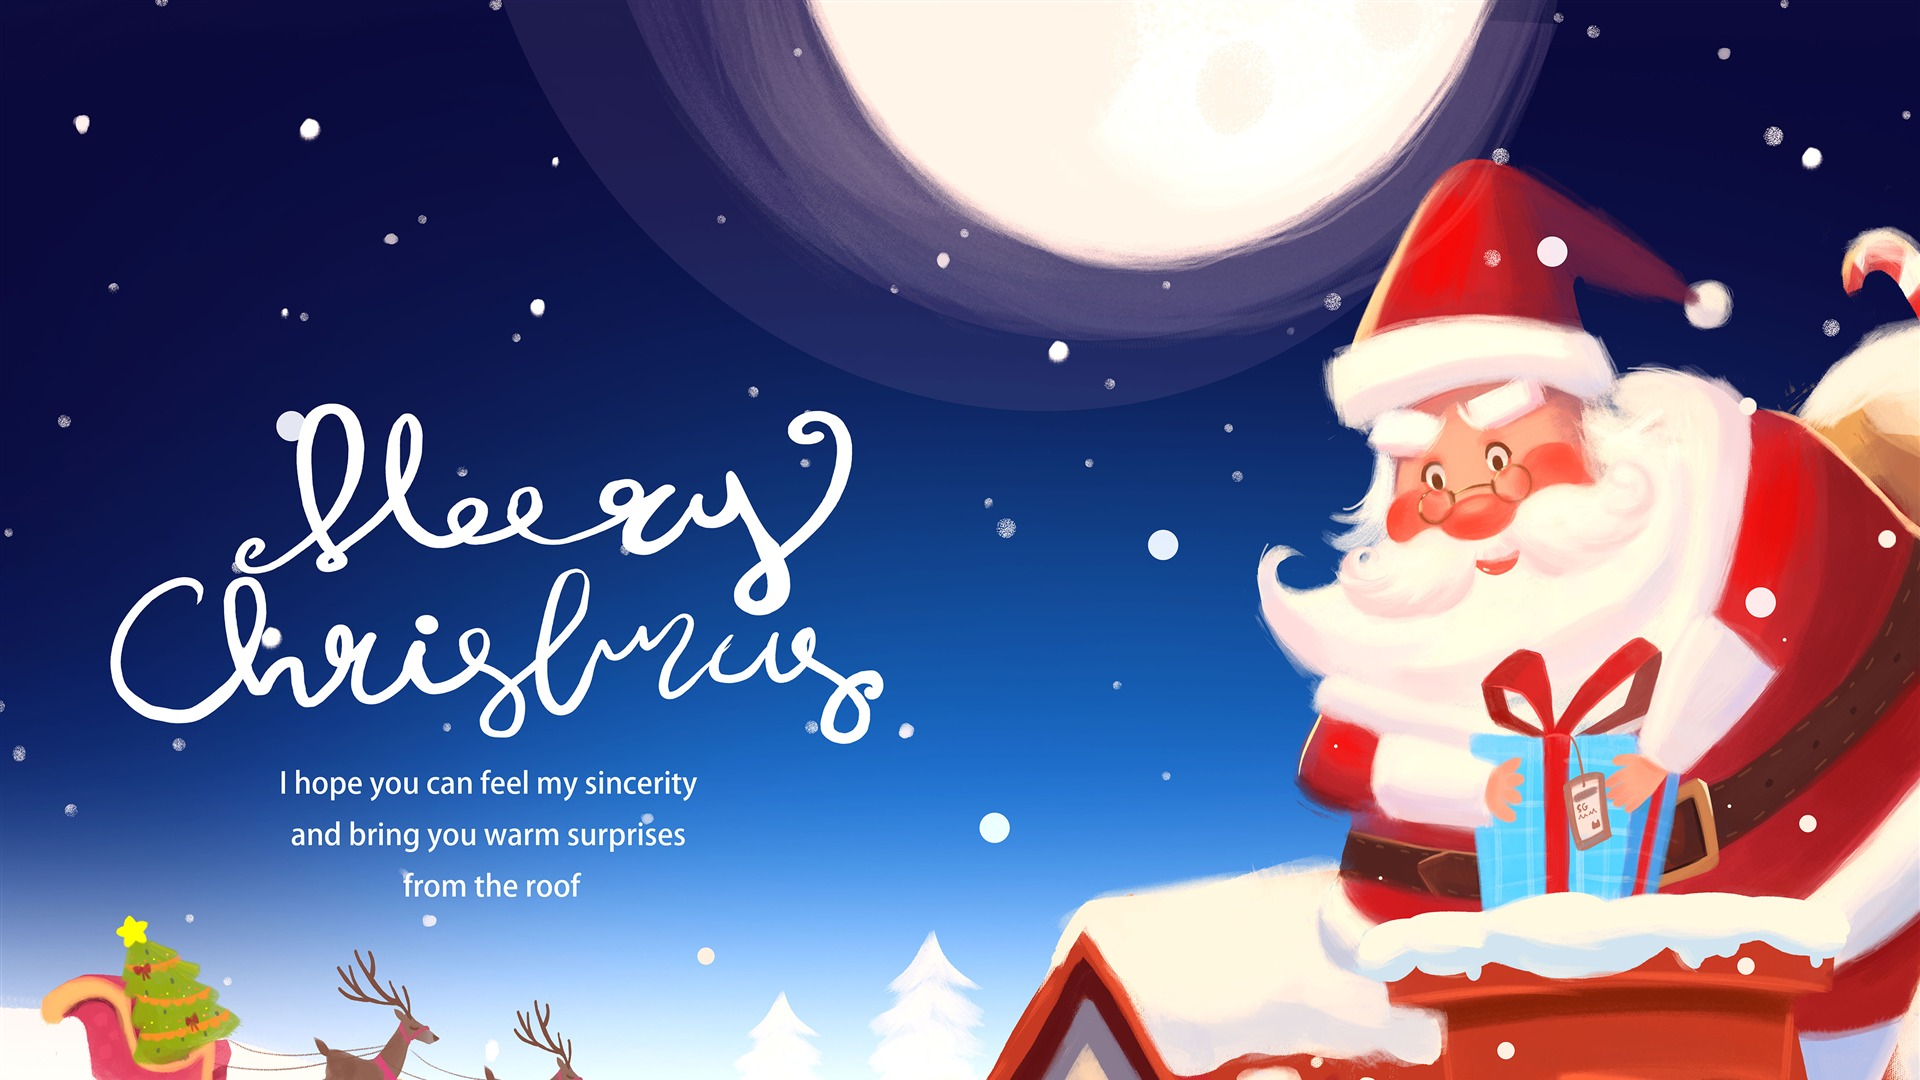 Merry Christmas Santa Wishes Picture Wallpaper HD 1920x1080